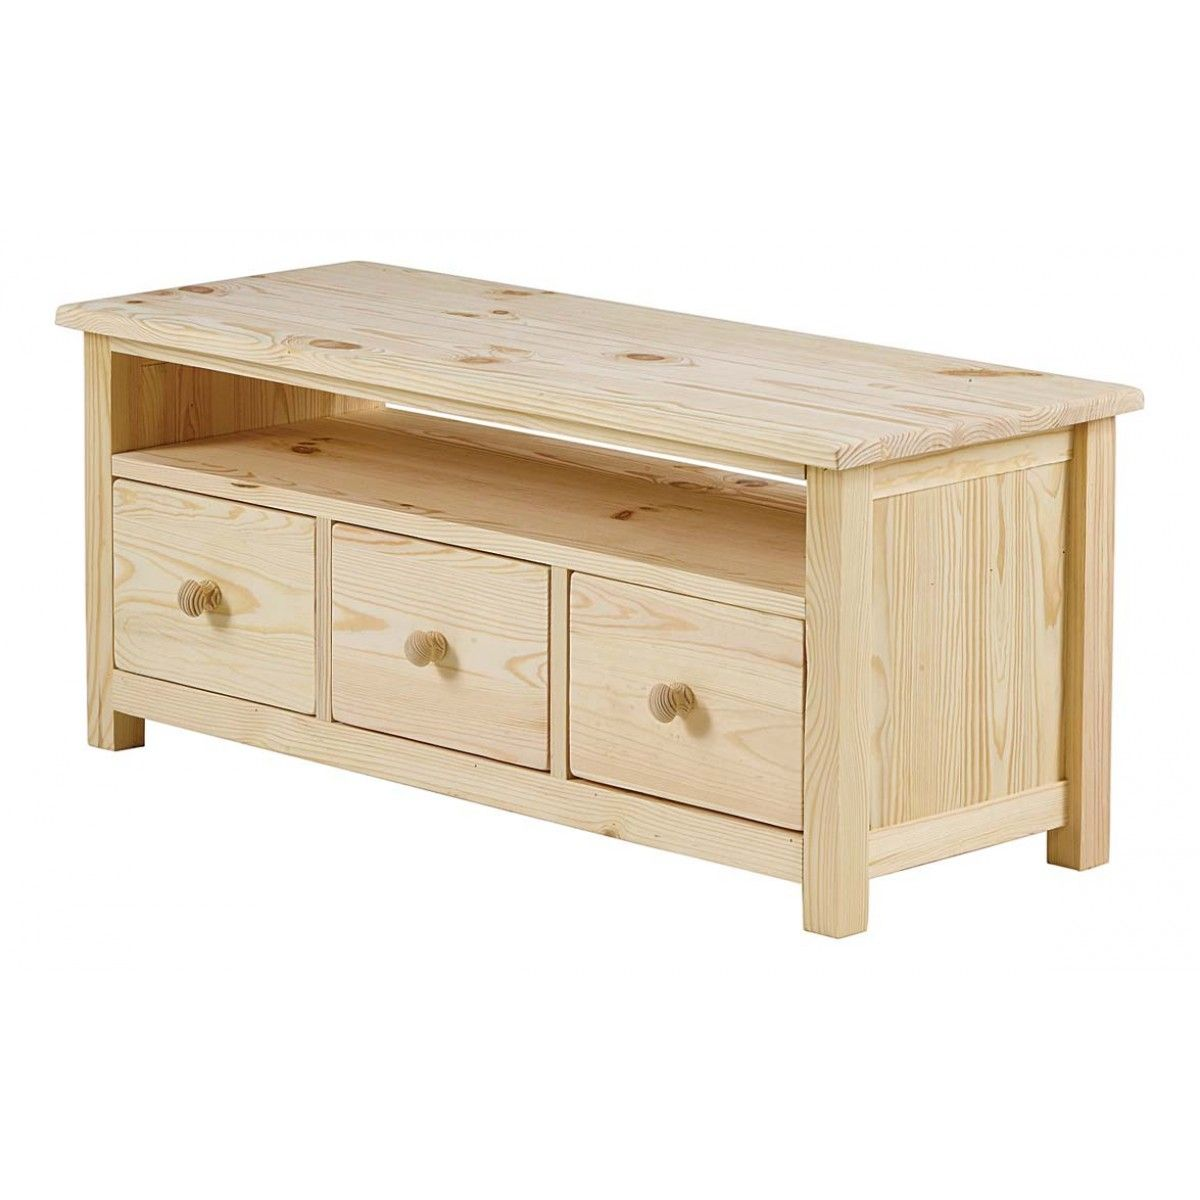 Table Basse Pin Massif Brut 3 Tiroirs 1 Niche Matendance  # Meuble Tv En Pin Couleur Miel